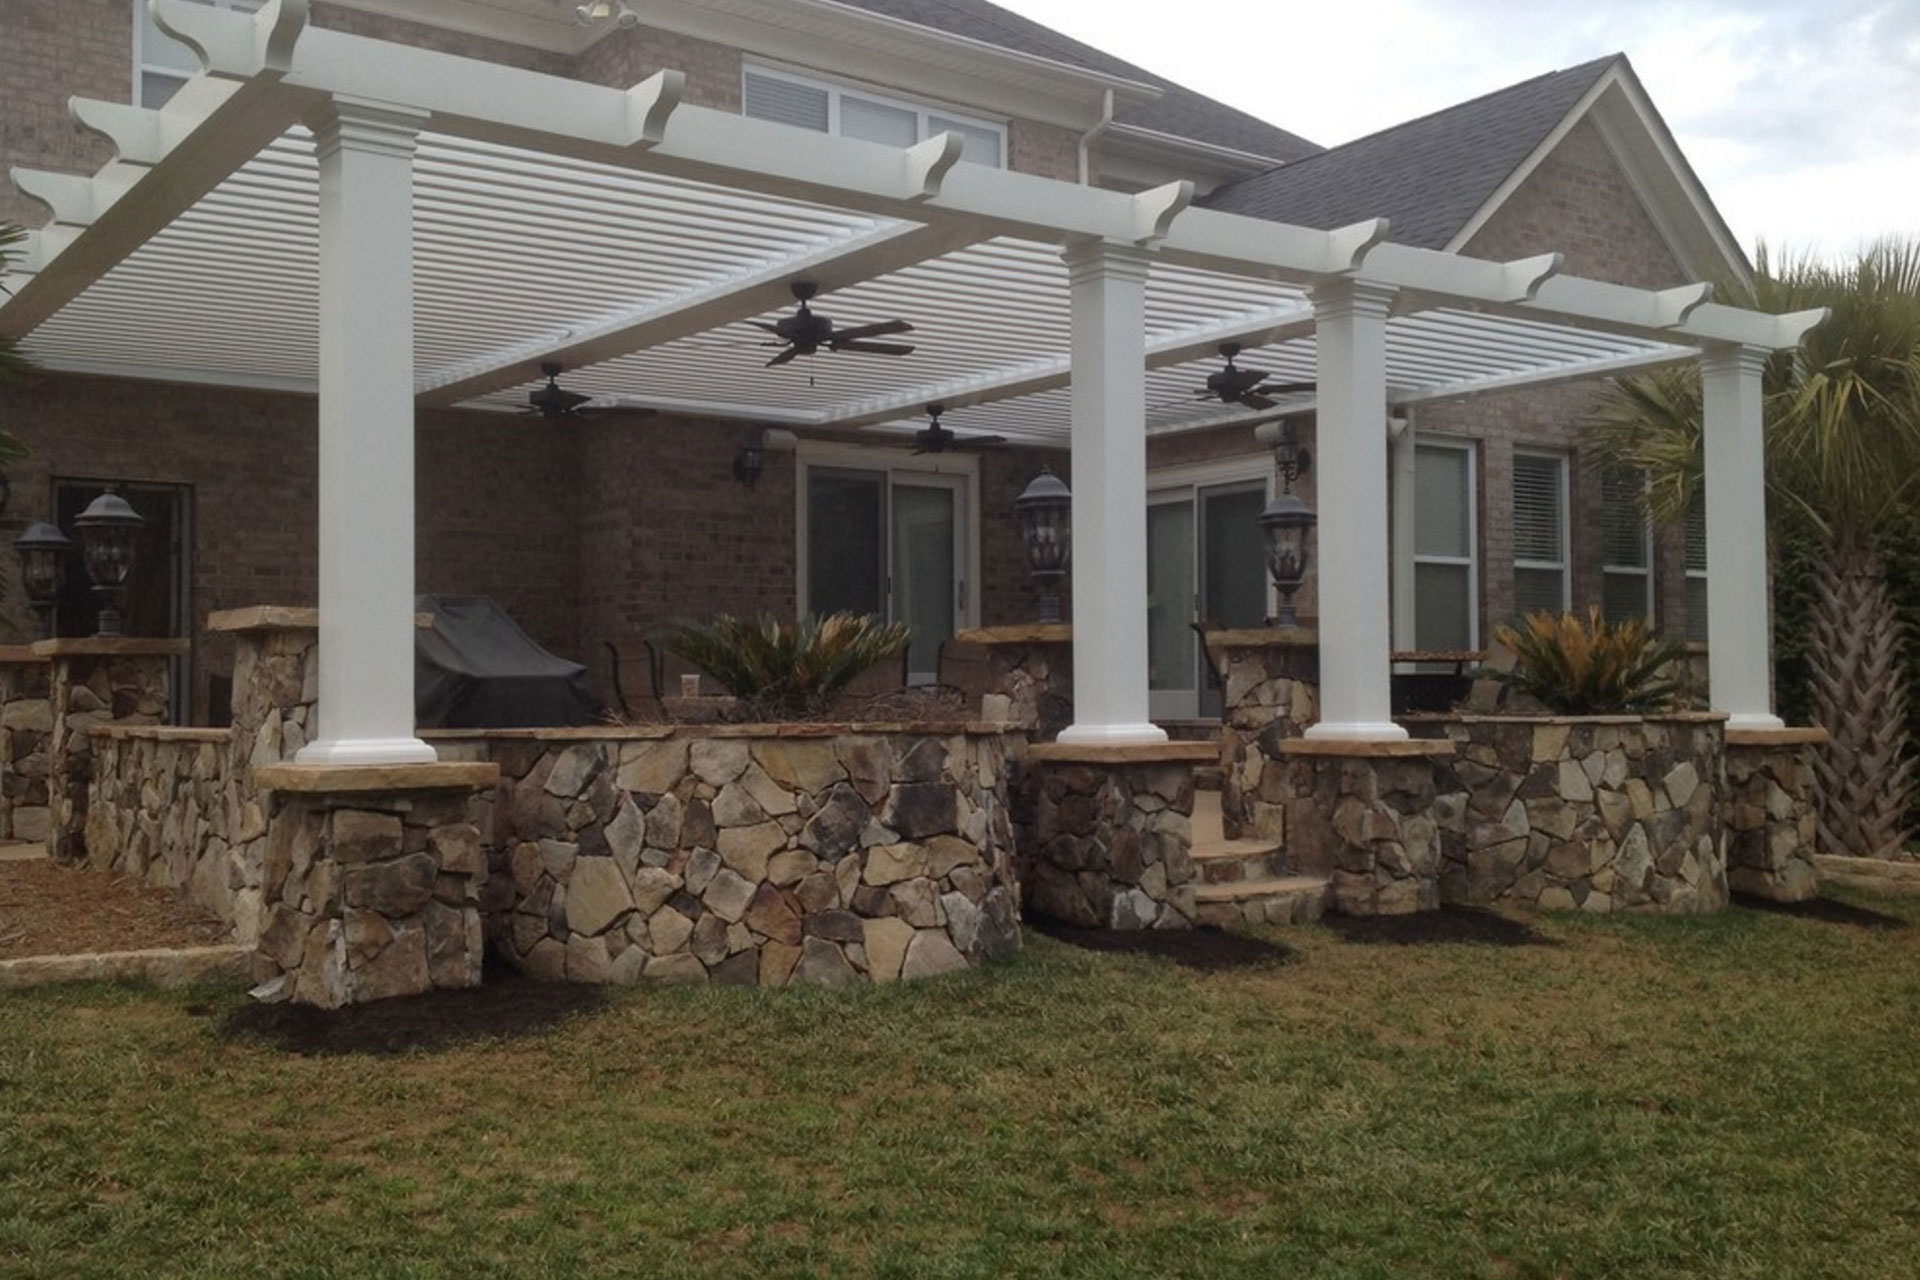 Pergola Roof Ideas What You Need to Know